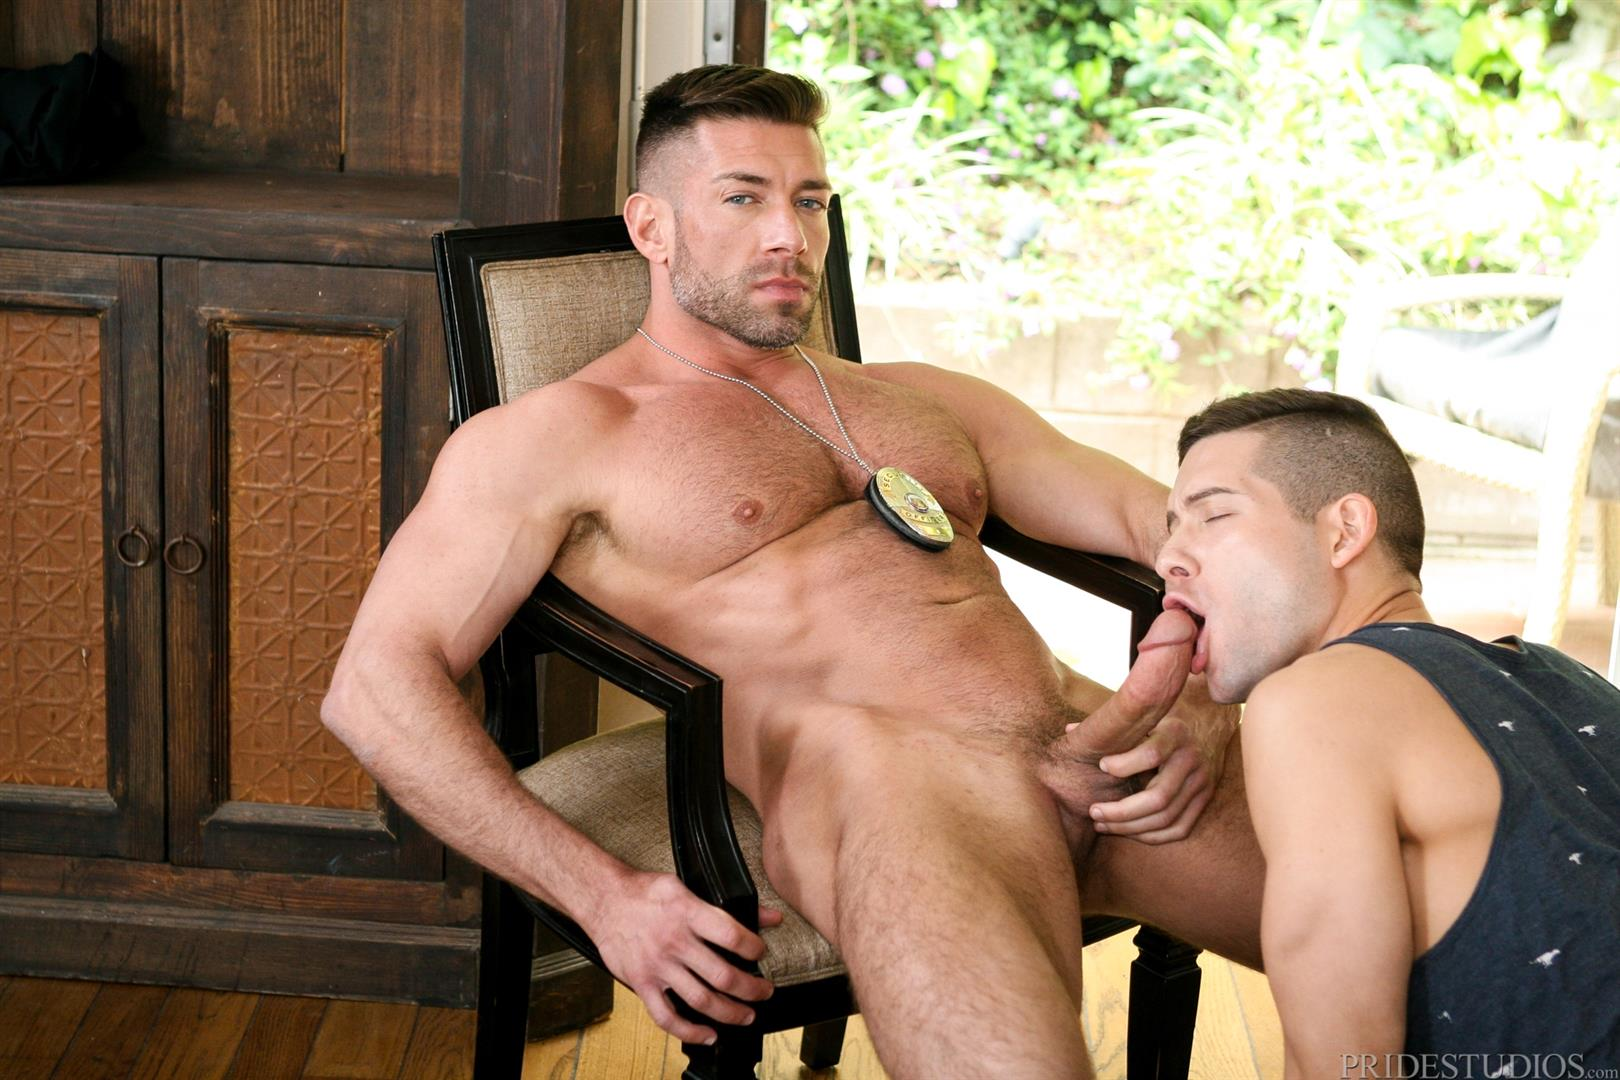 Dylan-Lucas-Kyle-Kash-and-Bruce-Beckham-Hairy-Muscle-Daddy-Fucking-Amateur-Gay-Porn-08 Hairy Muscle Daddy Bruce Beckham Fucks Kyle Kash